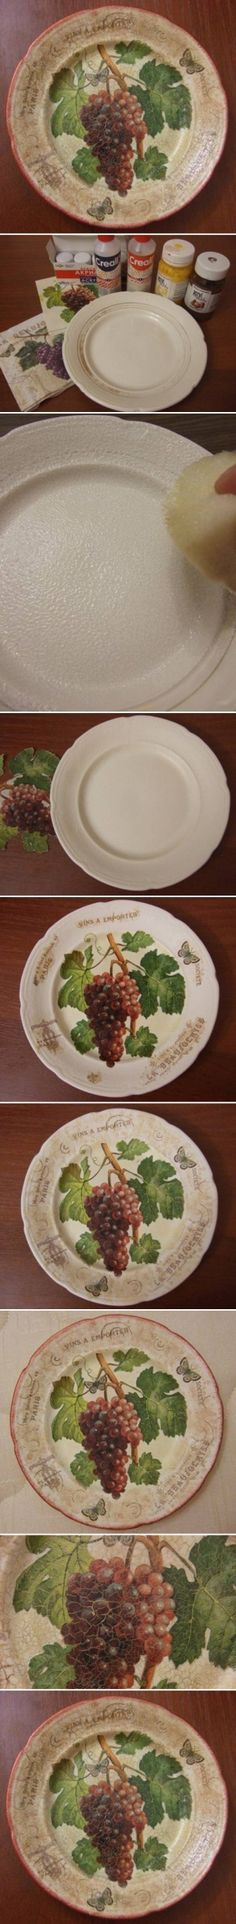 DIY Old Plate Decoupage DIY Old Plate Decoupage by diyforever